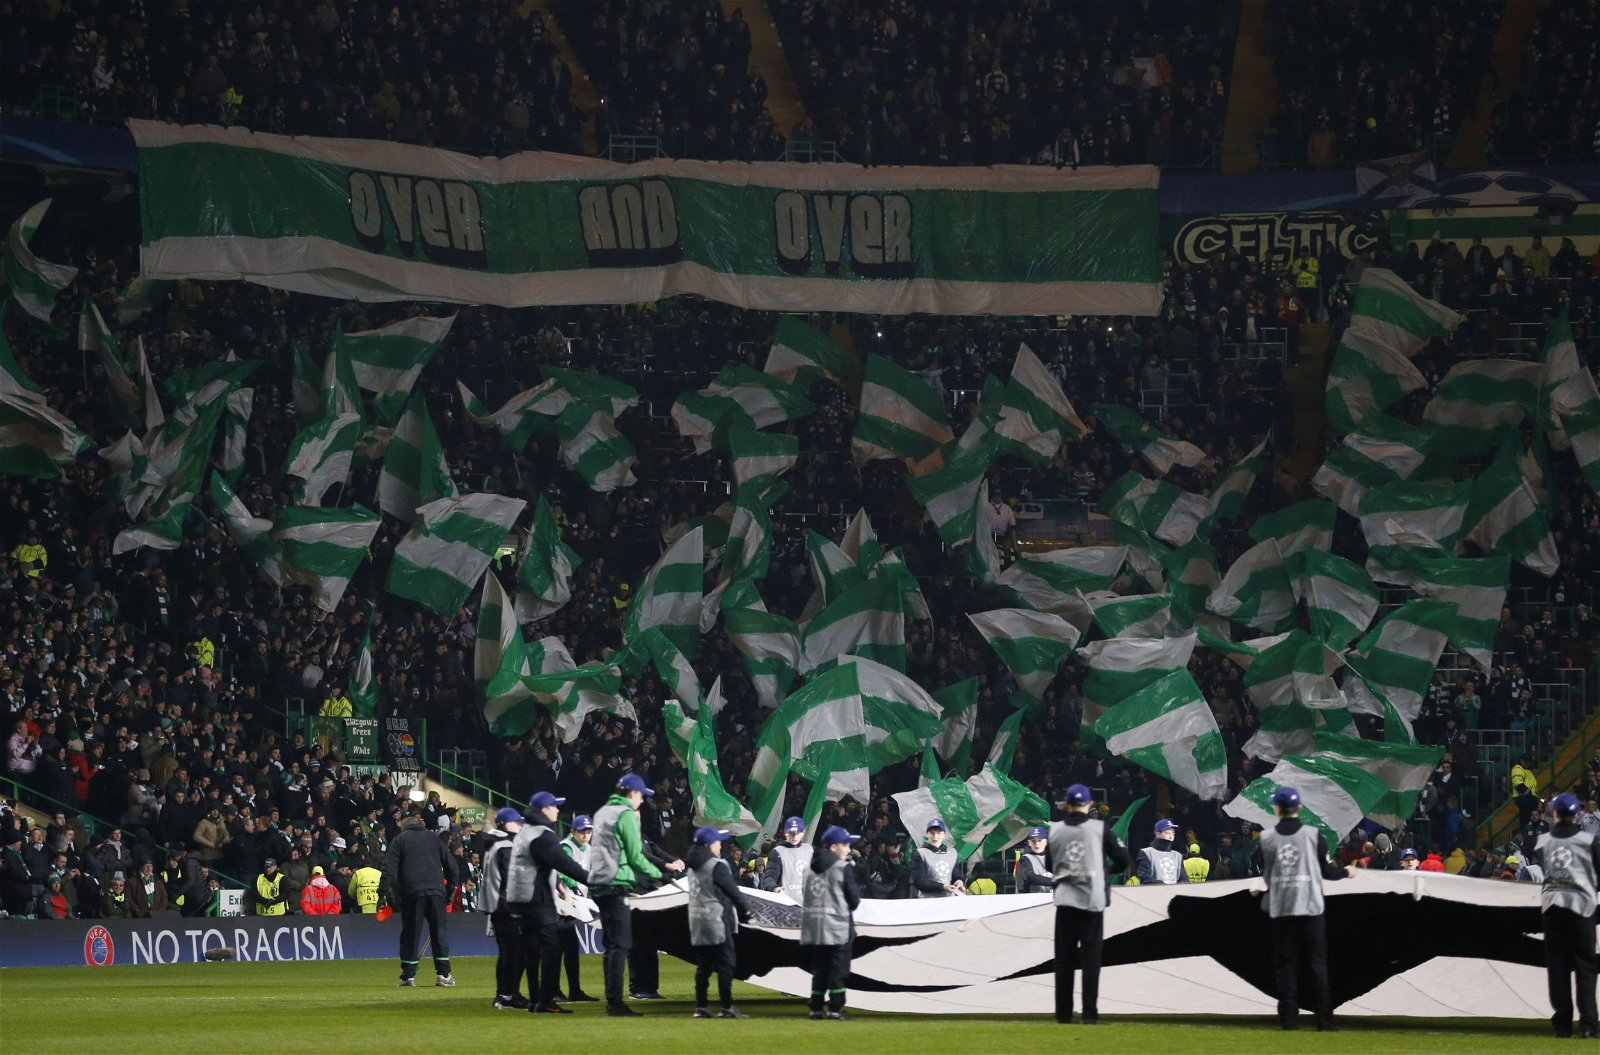 Celtic Park on a Champions League night